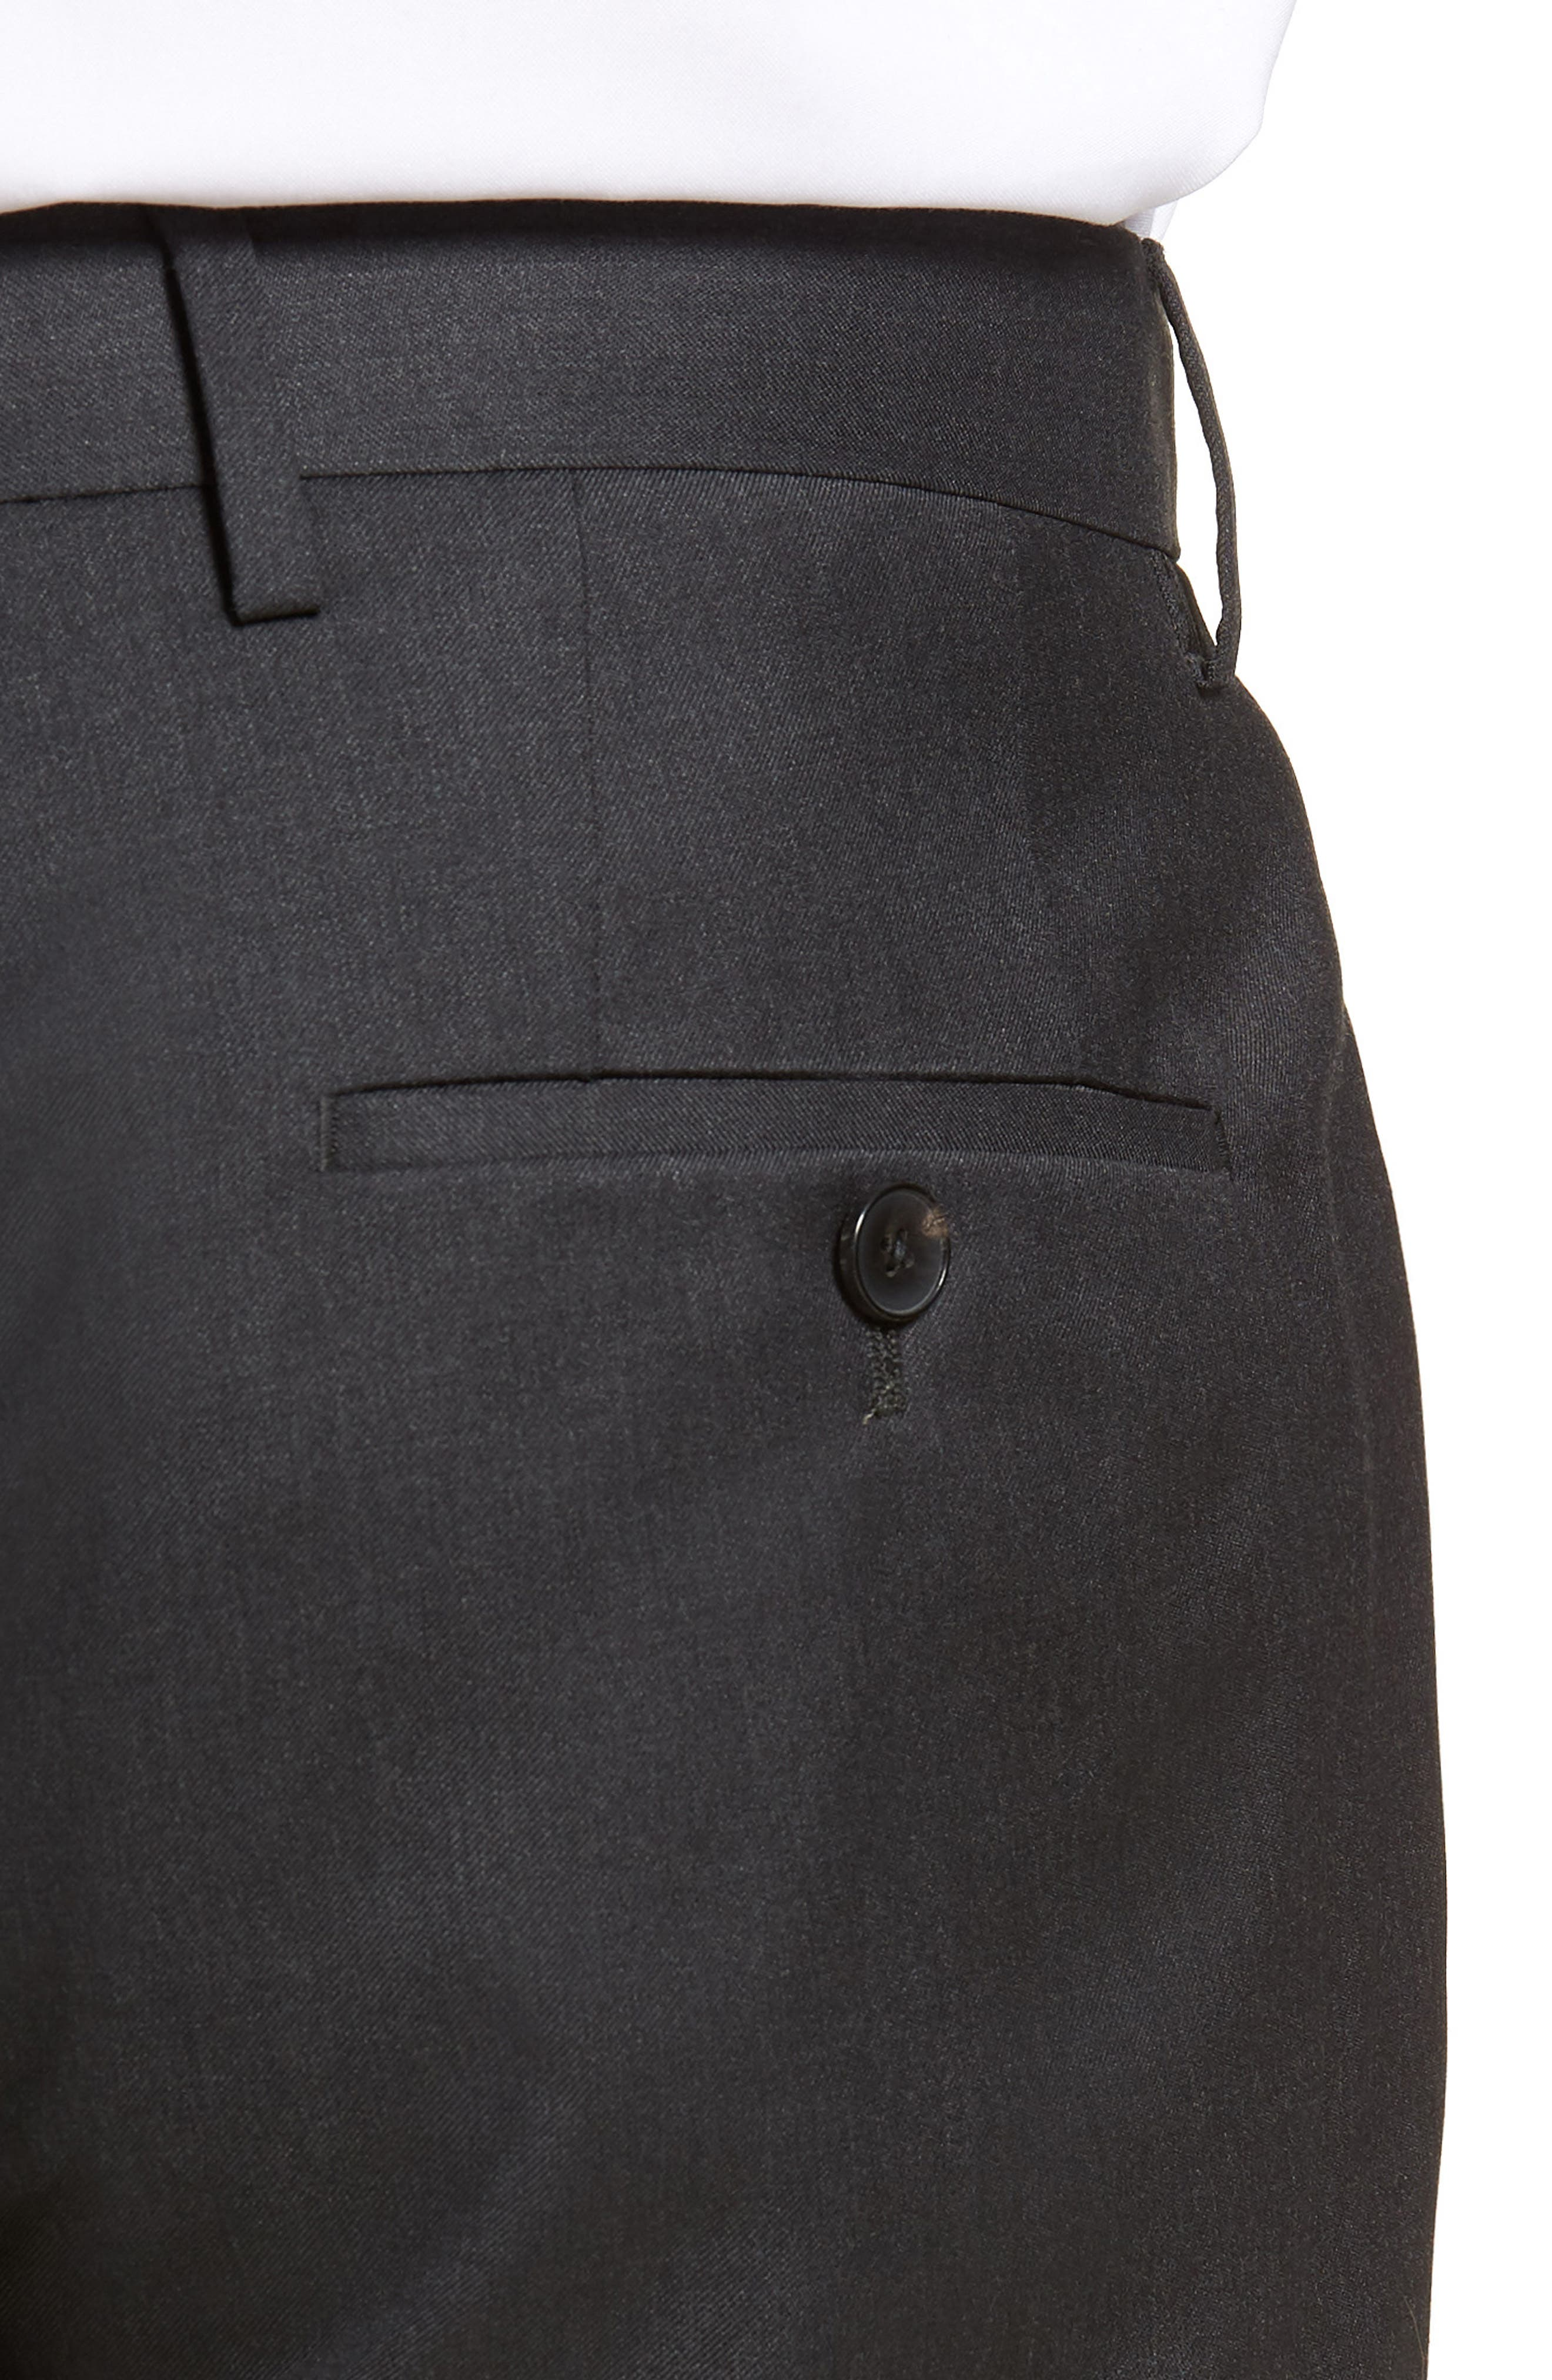 Gibson CYL Flat Front Solid Wool Trousers,                             Alternate thumbnail 4, color,                             DARK GREY